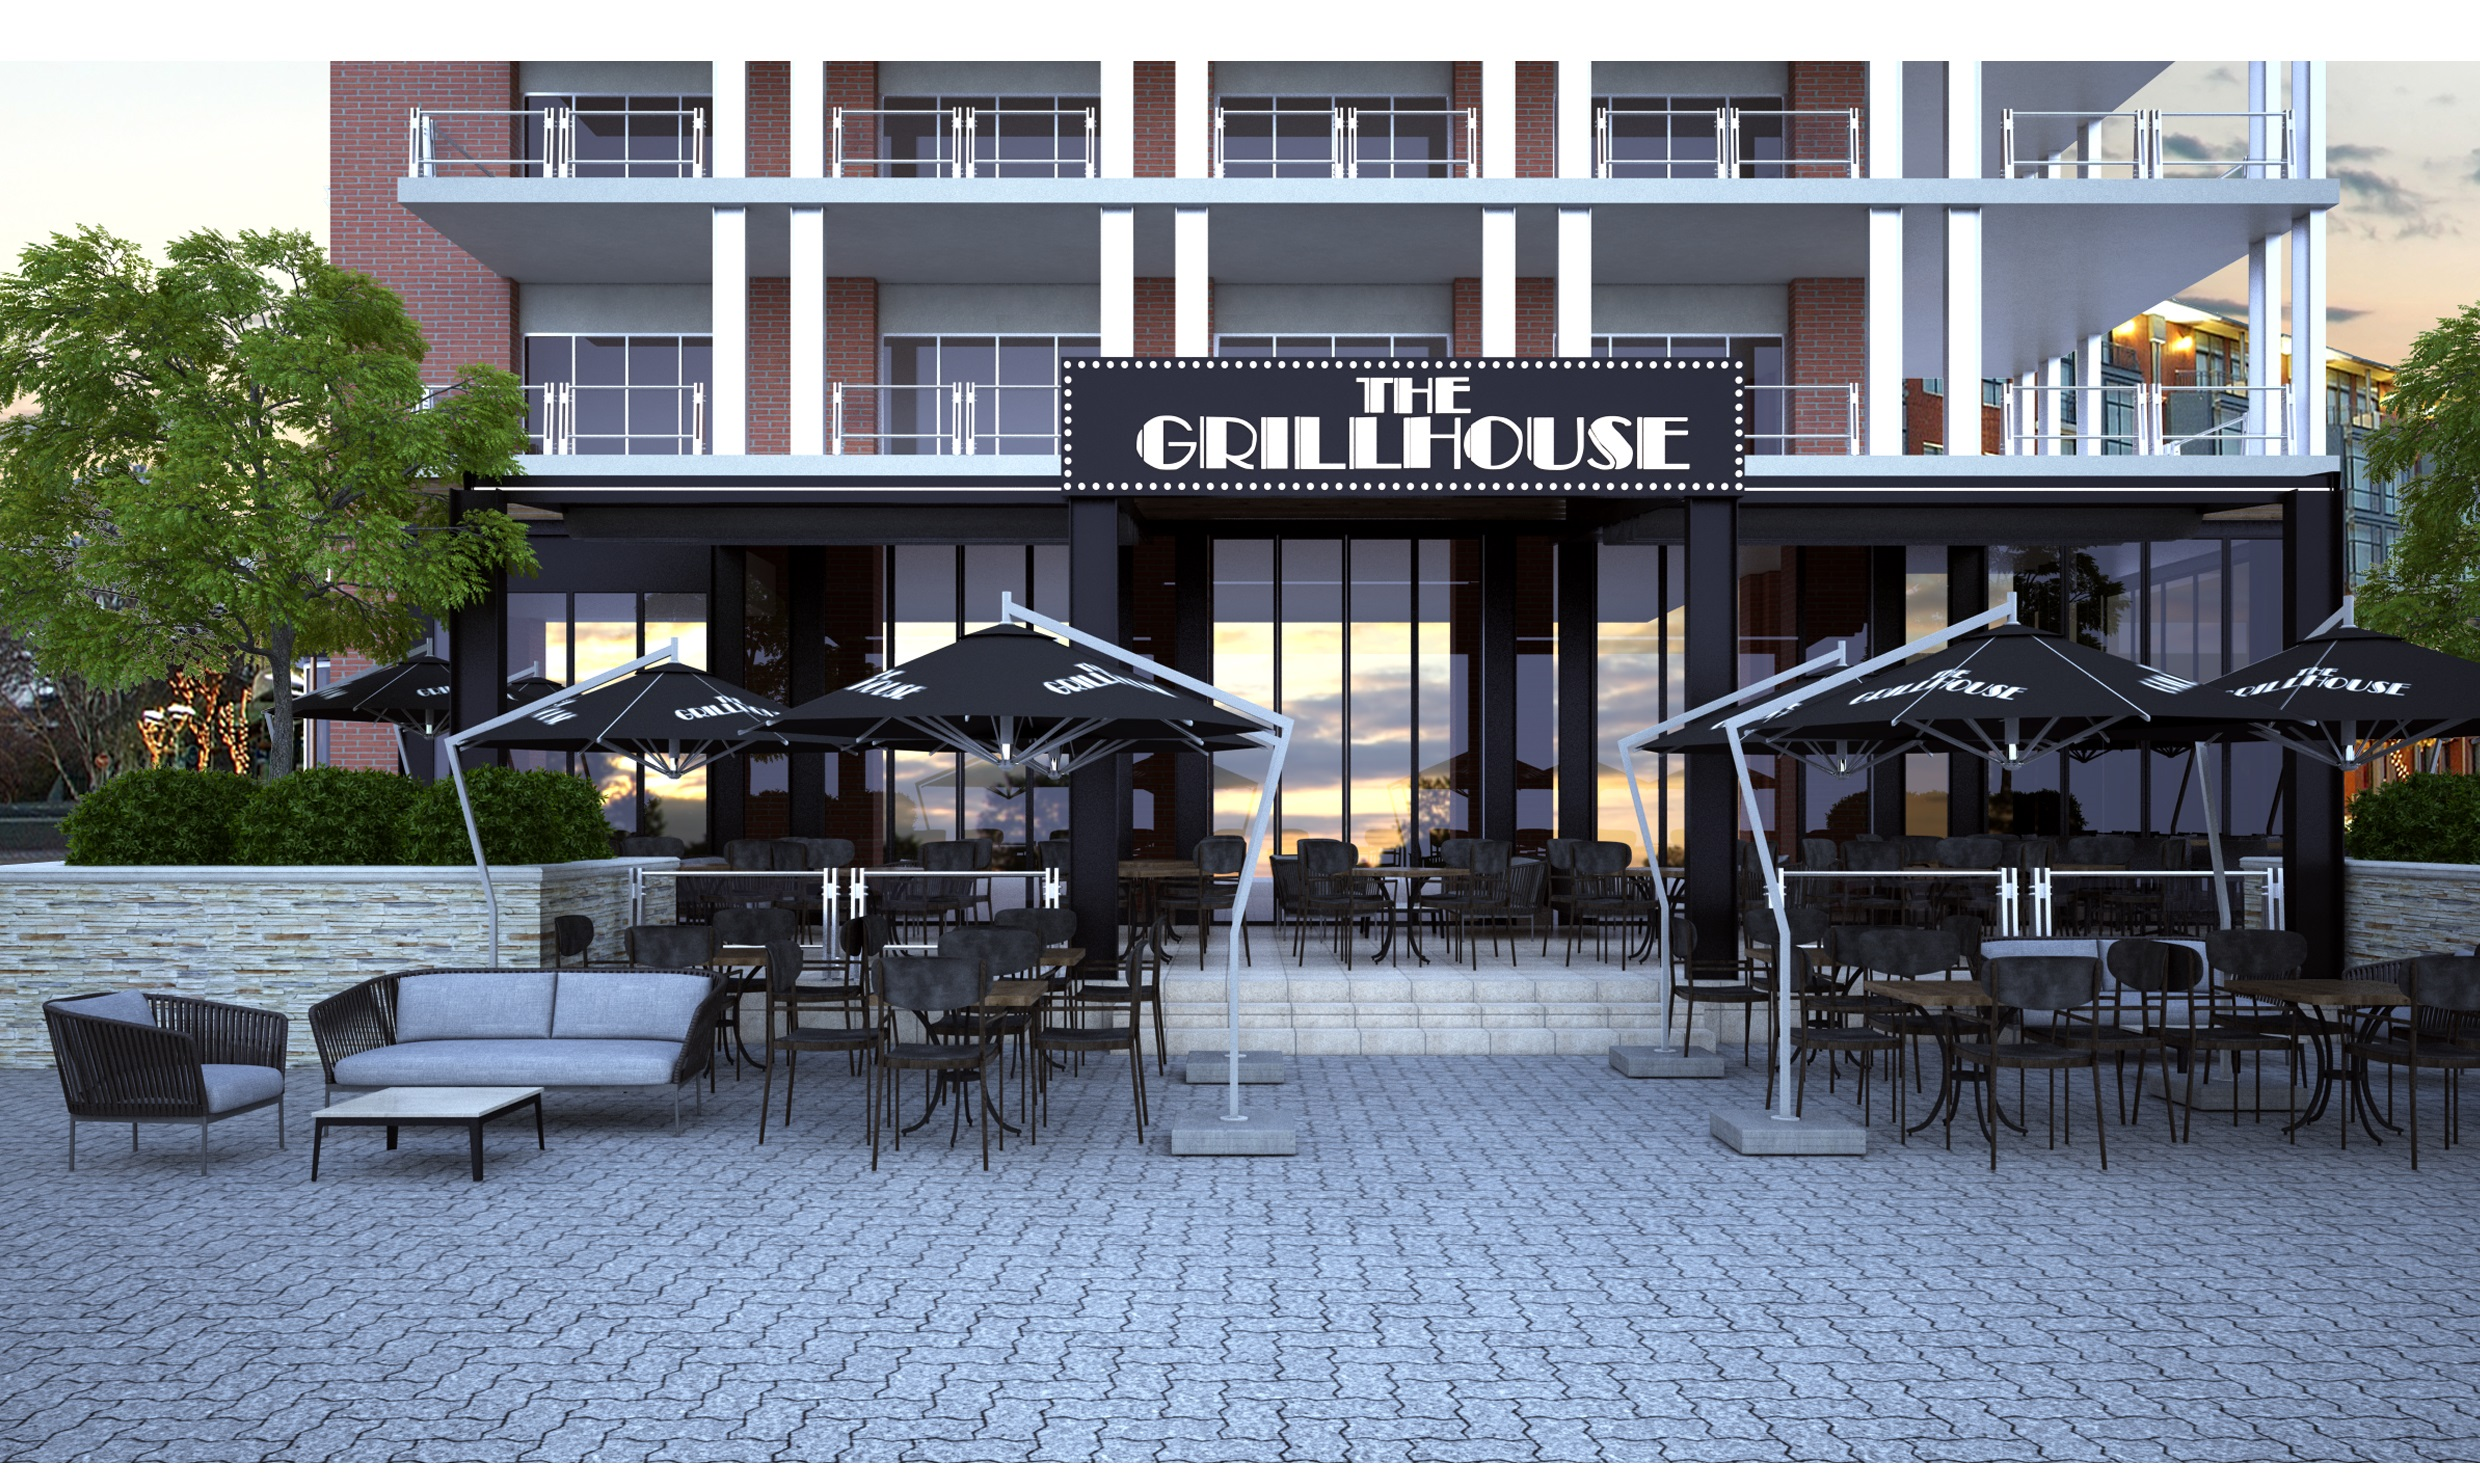 Melrose Arch The Grillhouse artist's impression